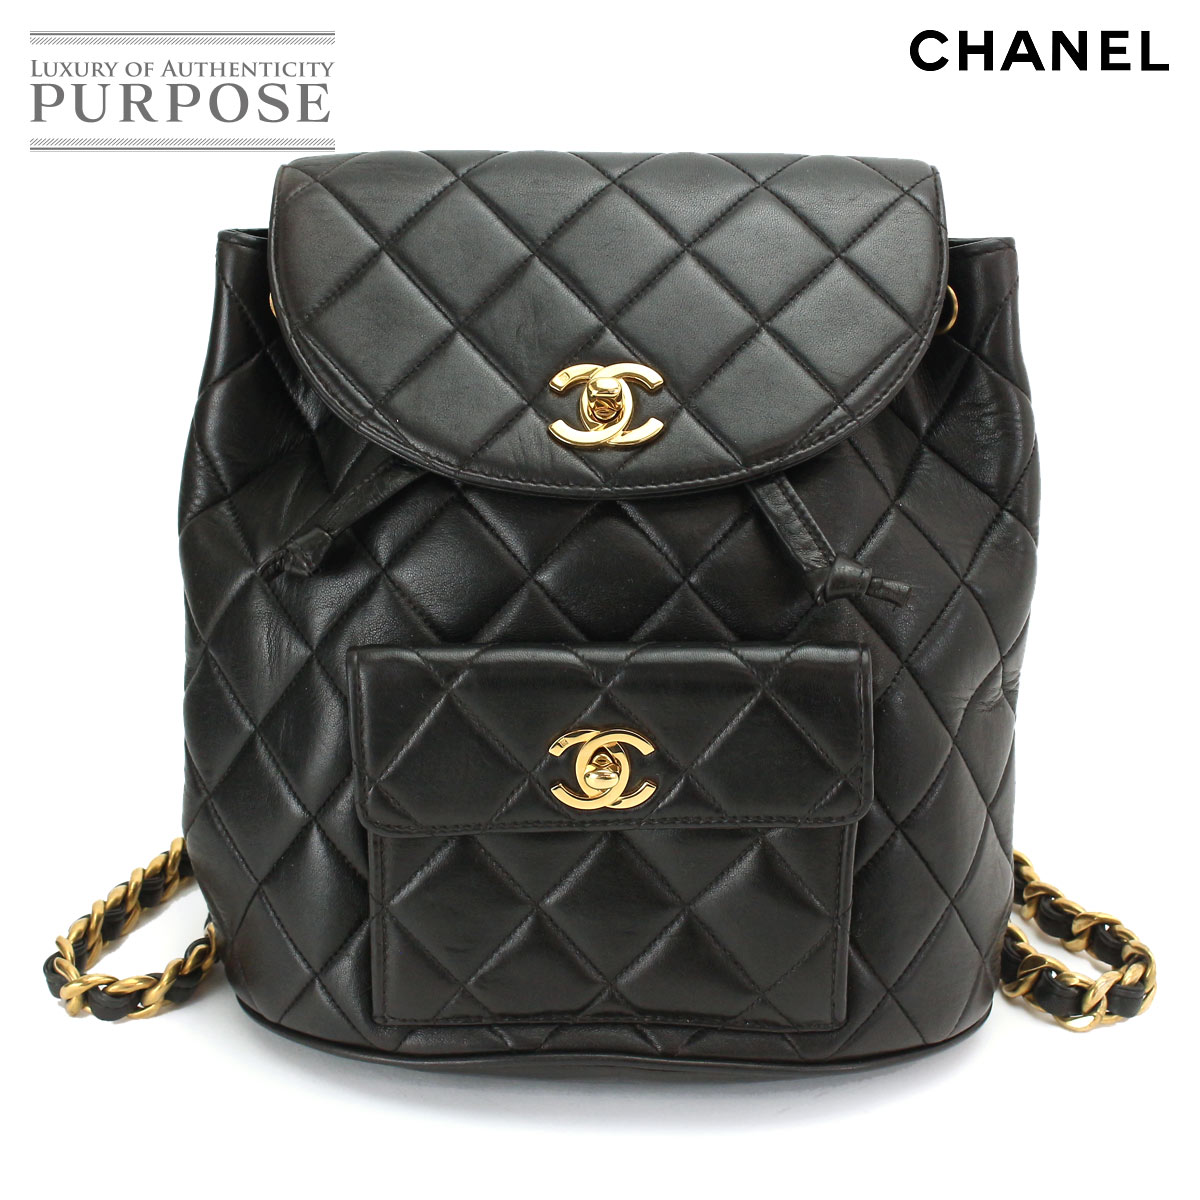 71602a632e69 Chanel CHANEL matelasse chain backpack rucksack leather black black [used]  brand